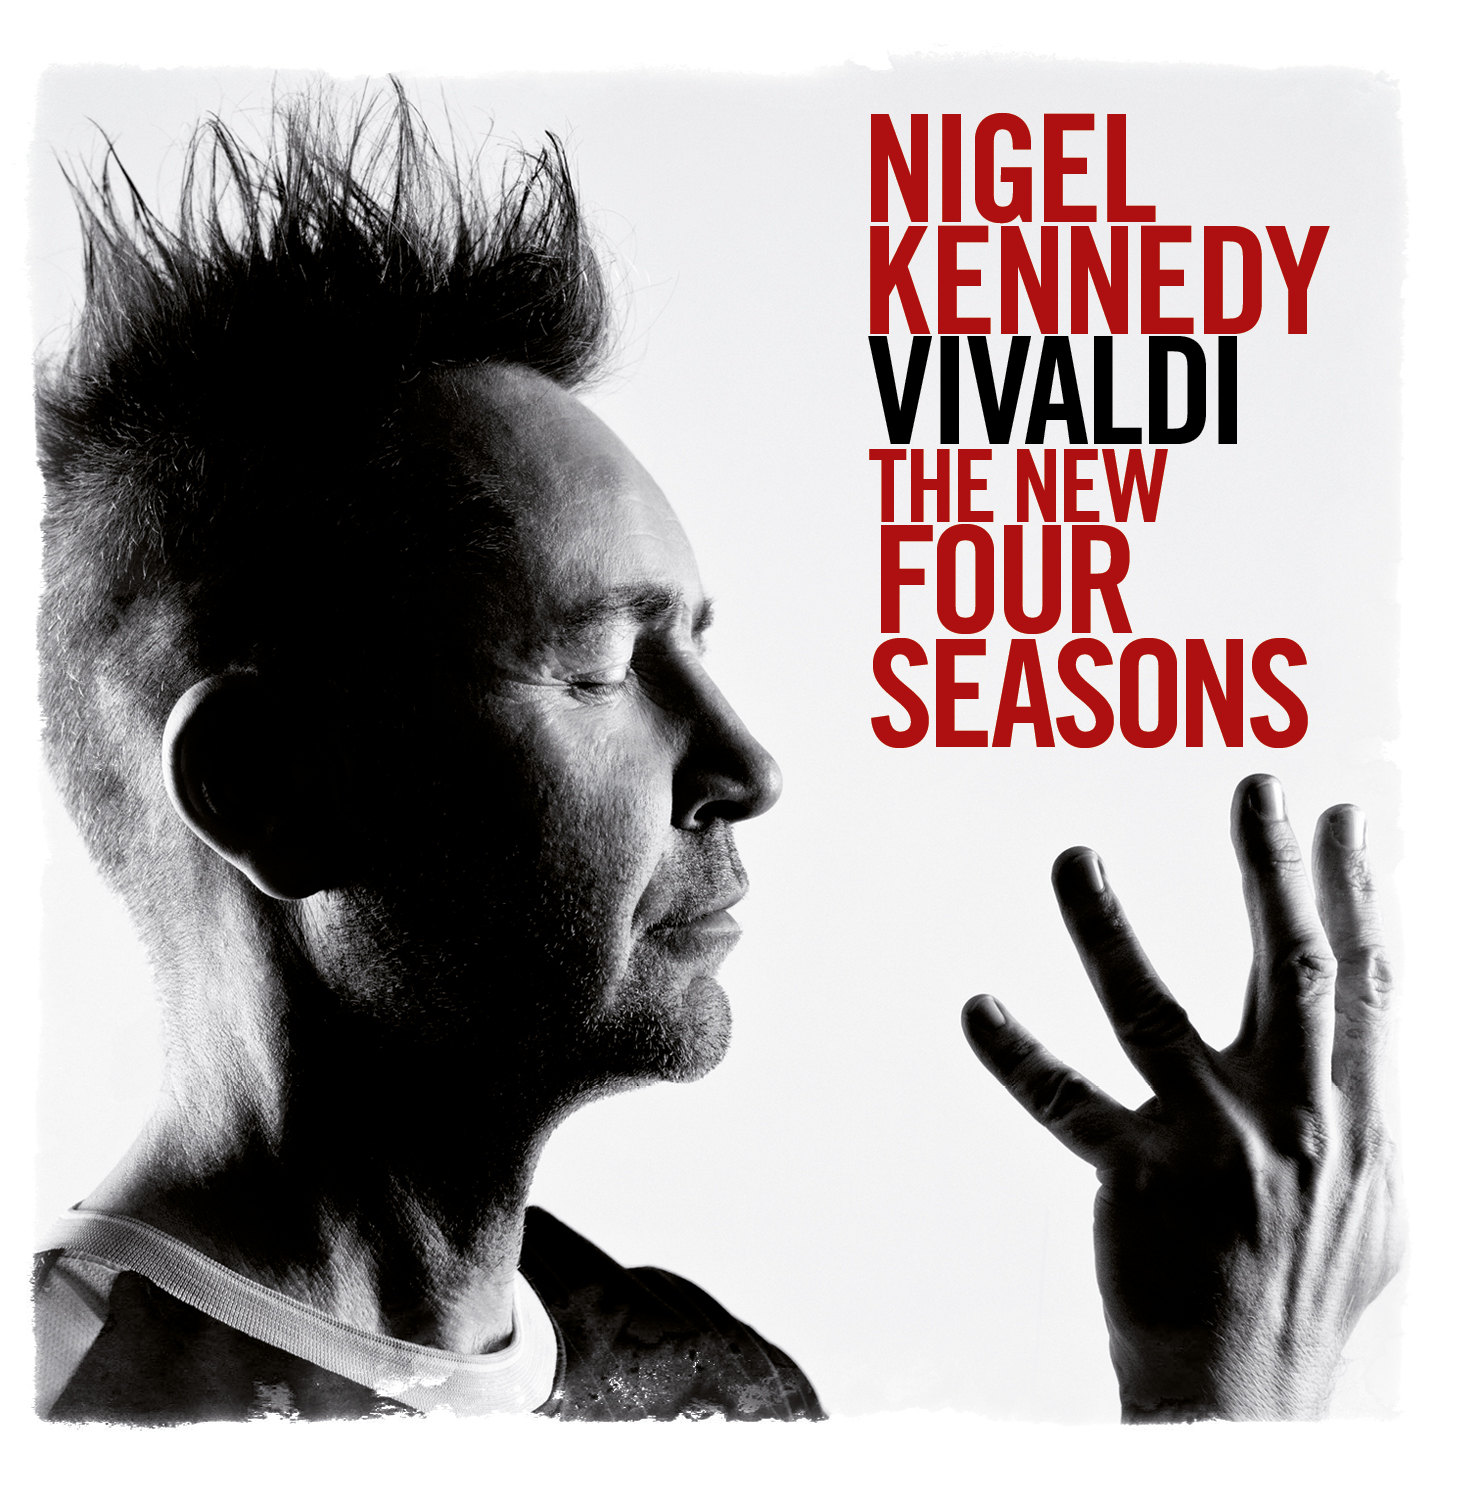 """Preorder Nigel Kennedy's """"Vivaldi: The New Four Seasons"""" Today For """"Summer, Presto"""" Instant Track Download"""